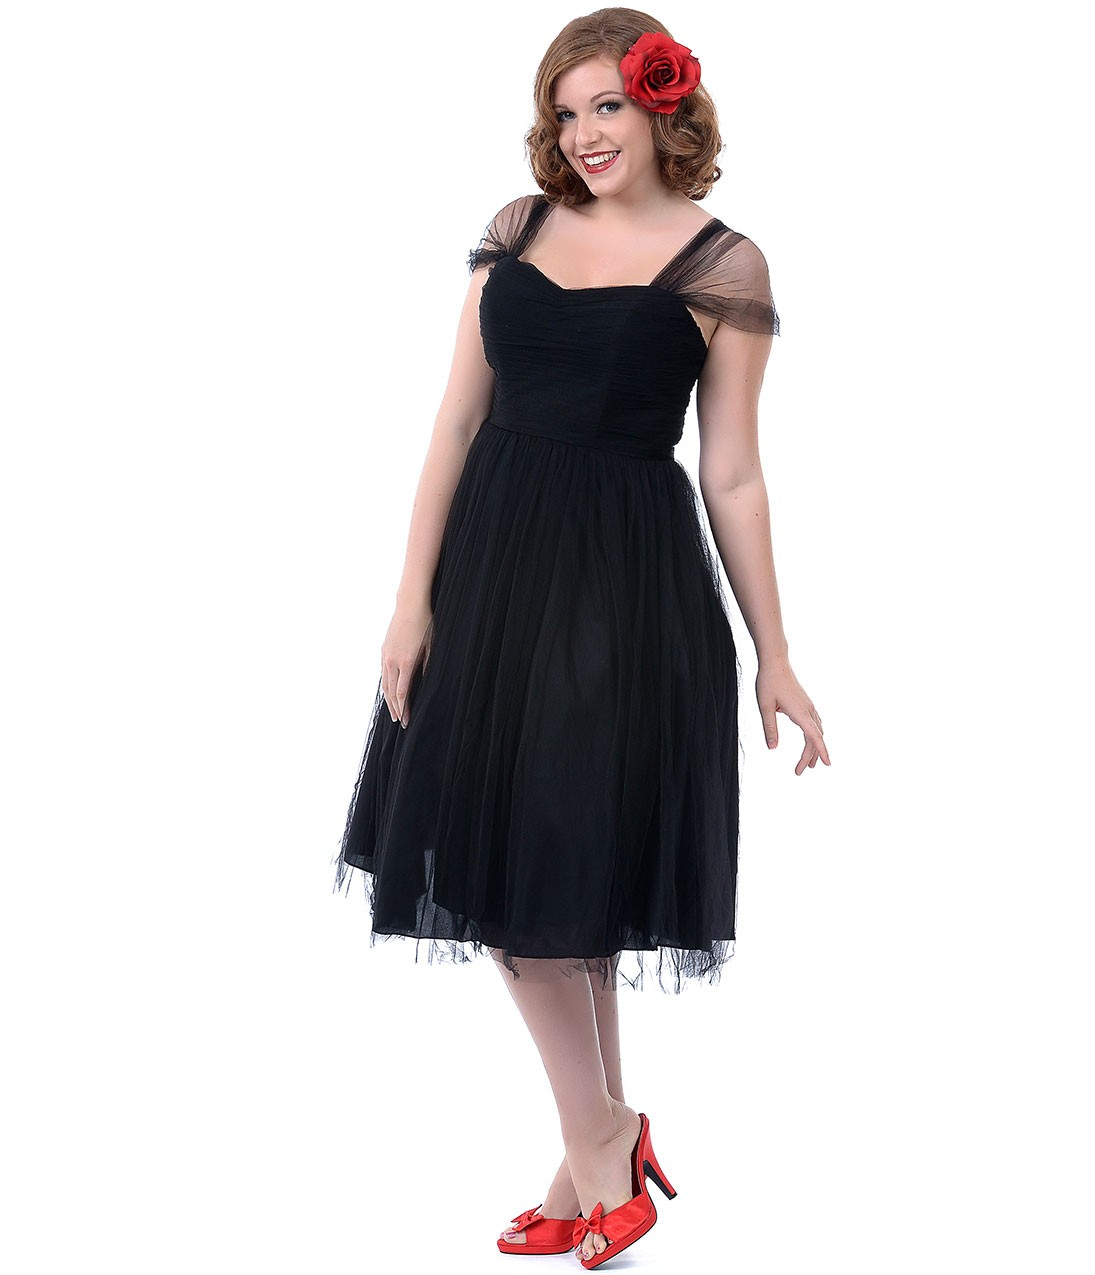 Plus Size Vintage Dresses Dressed Up Girl